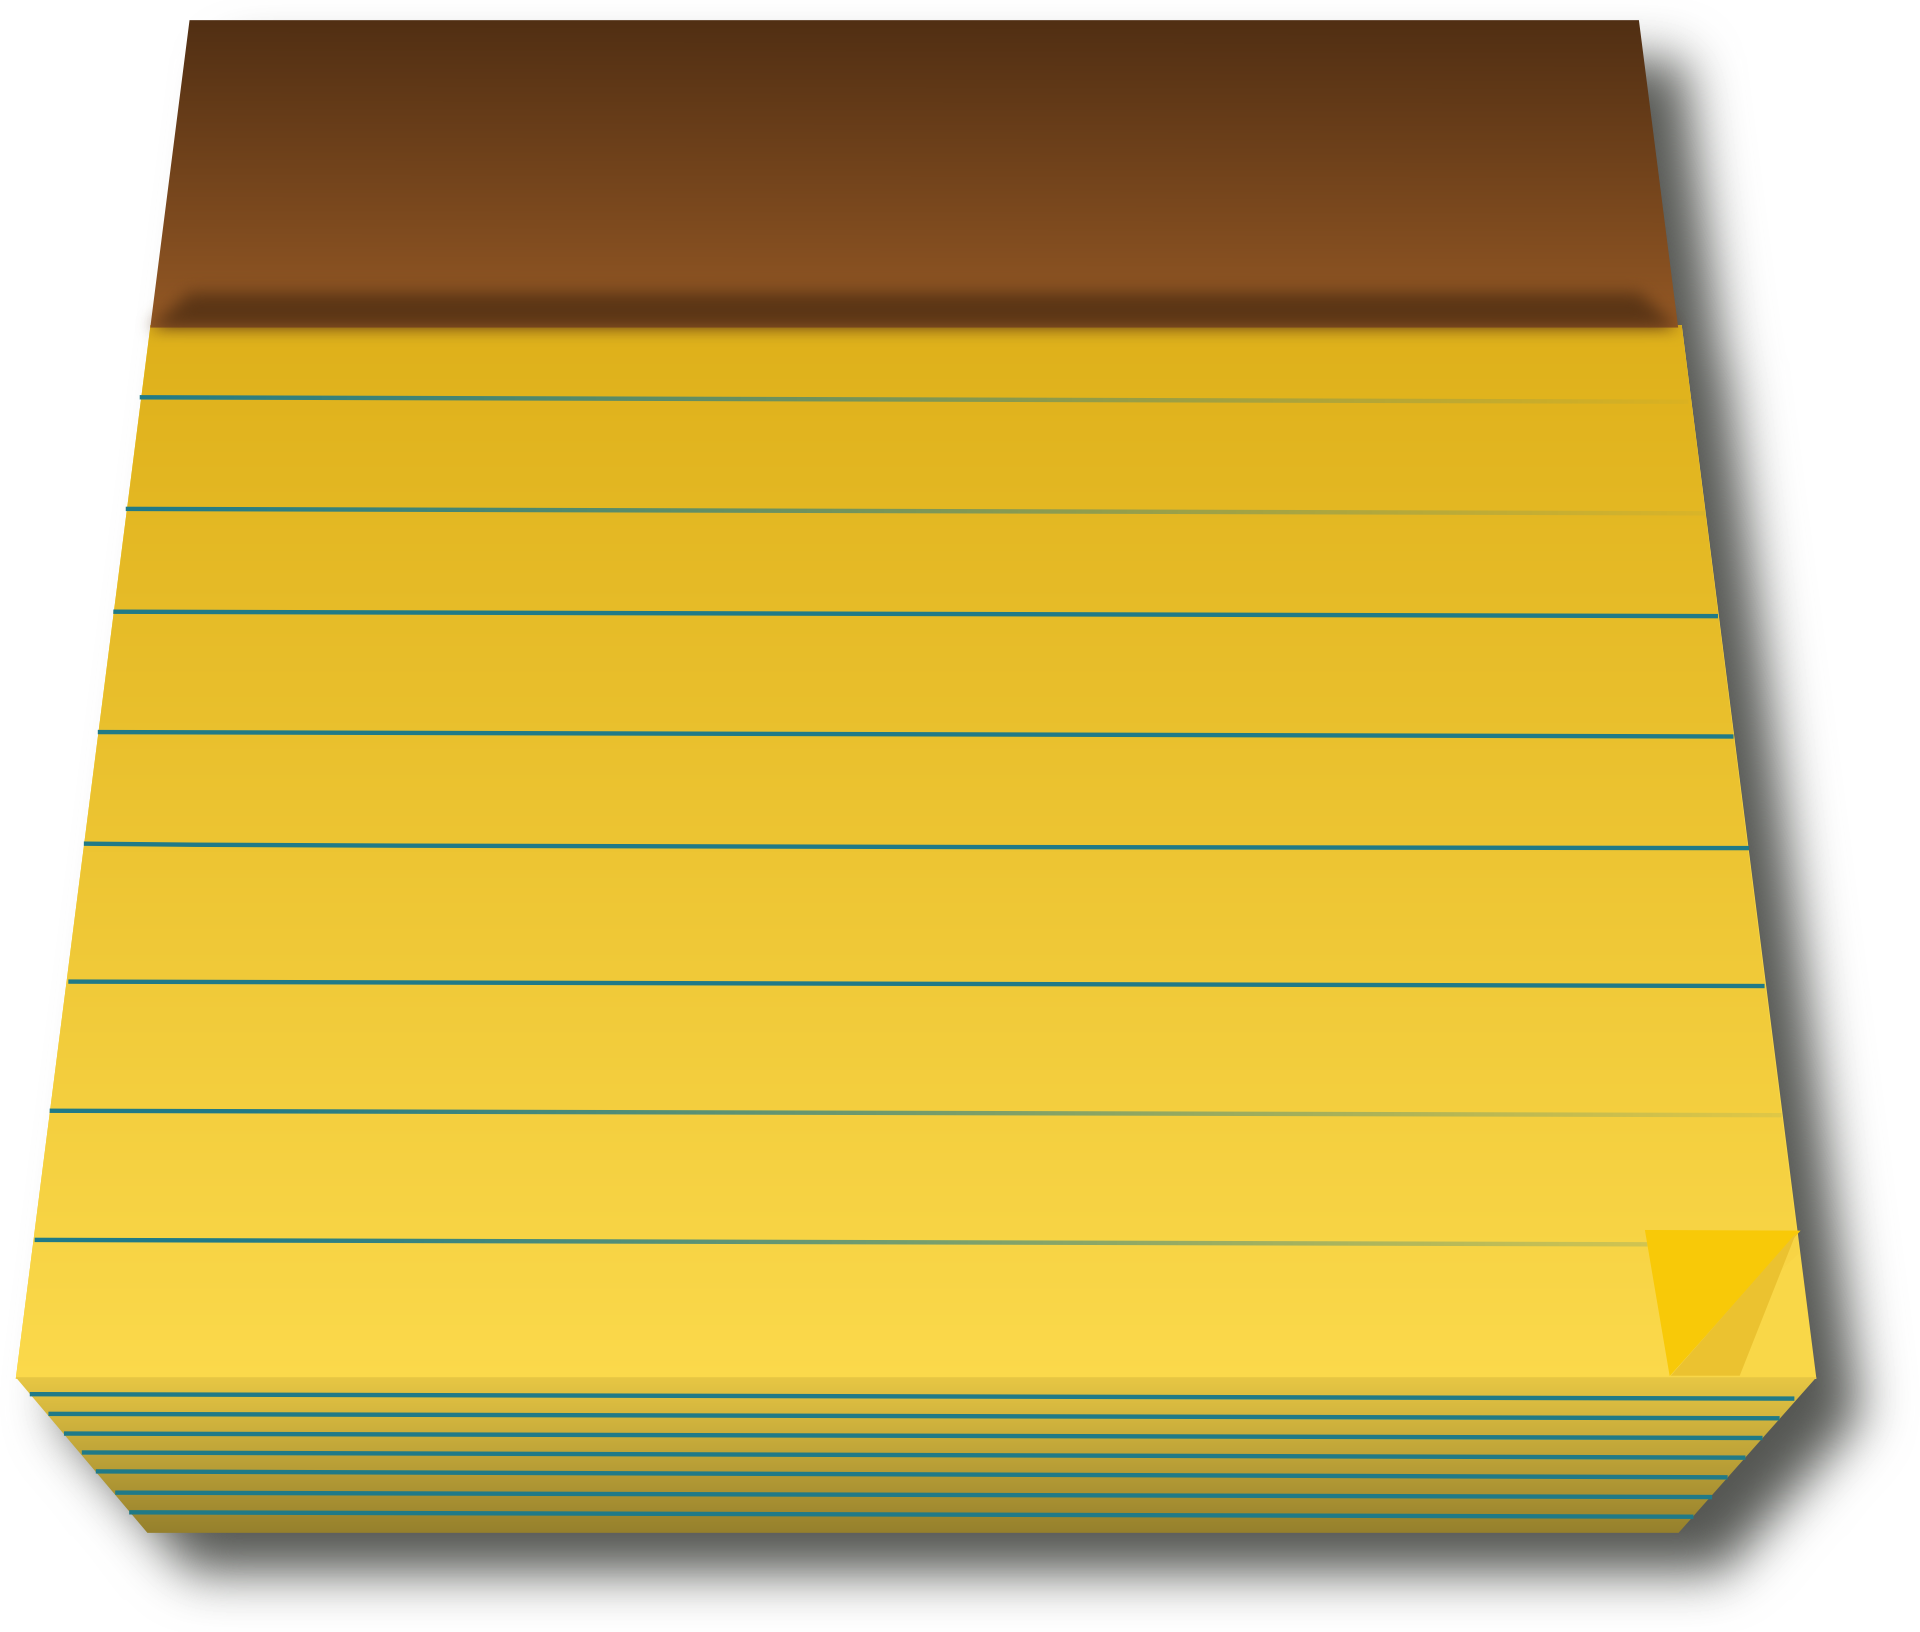 Post-it notes png. Post it note paper